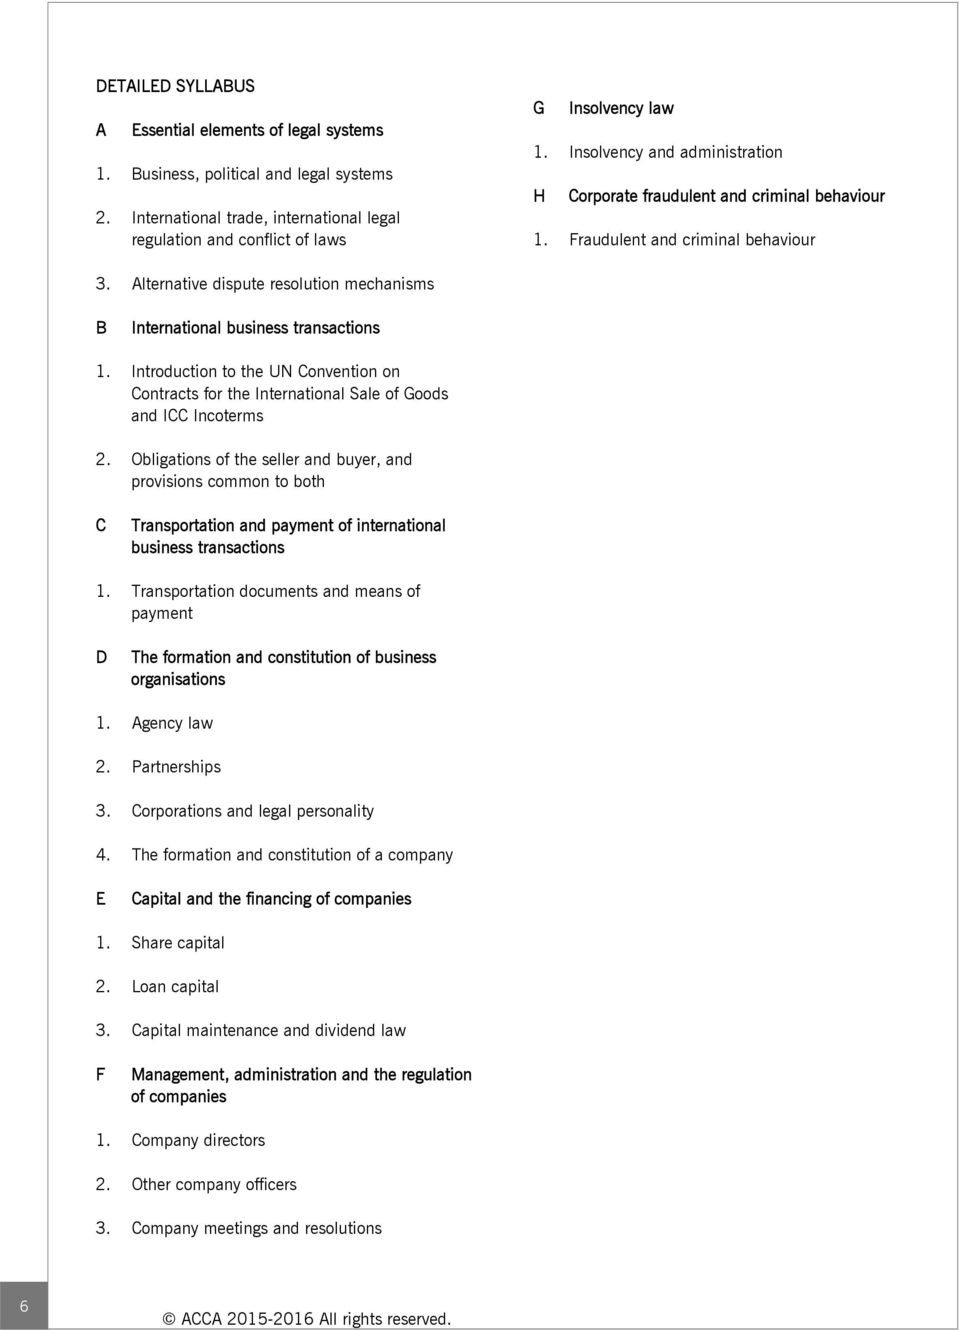 Corporate and Business Law (GLO) (F4) September 2015 (for CBE exams